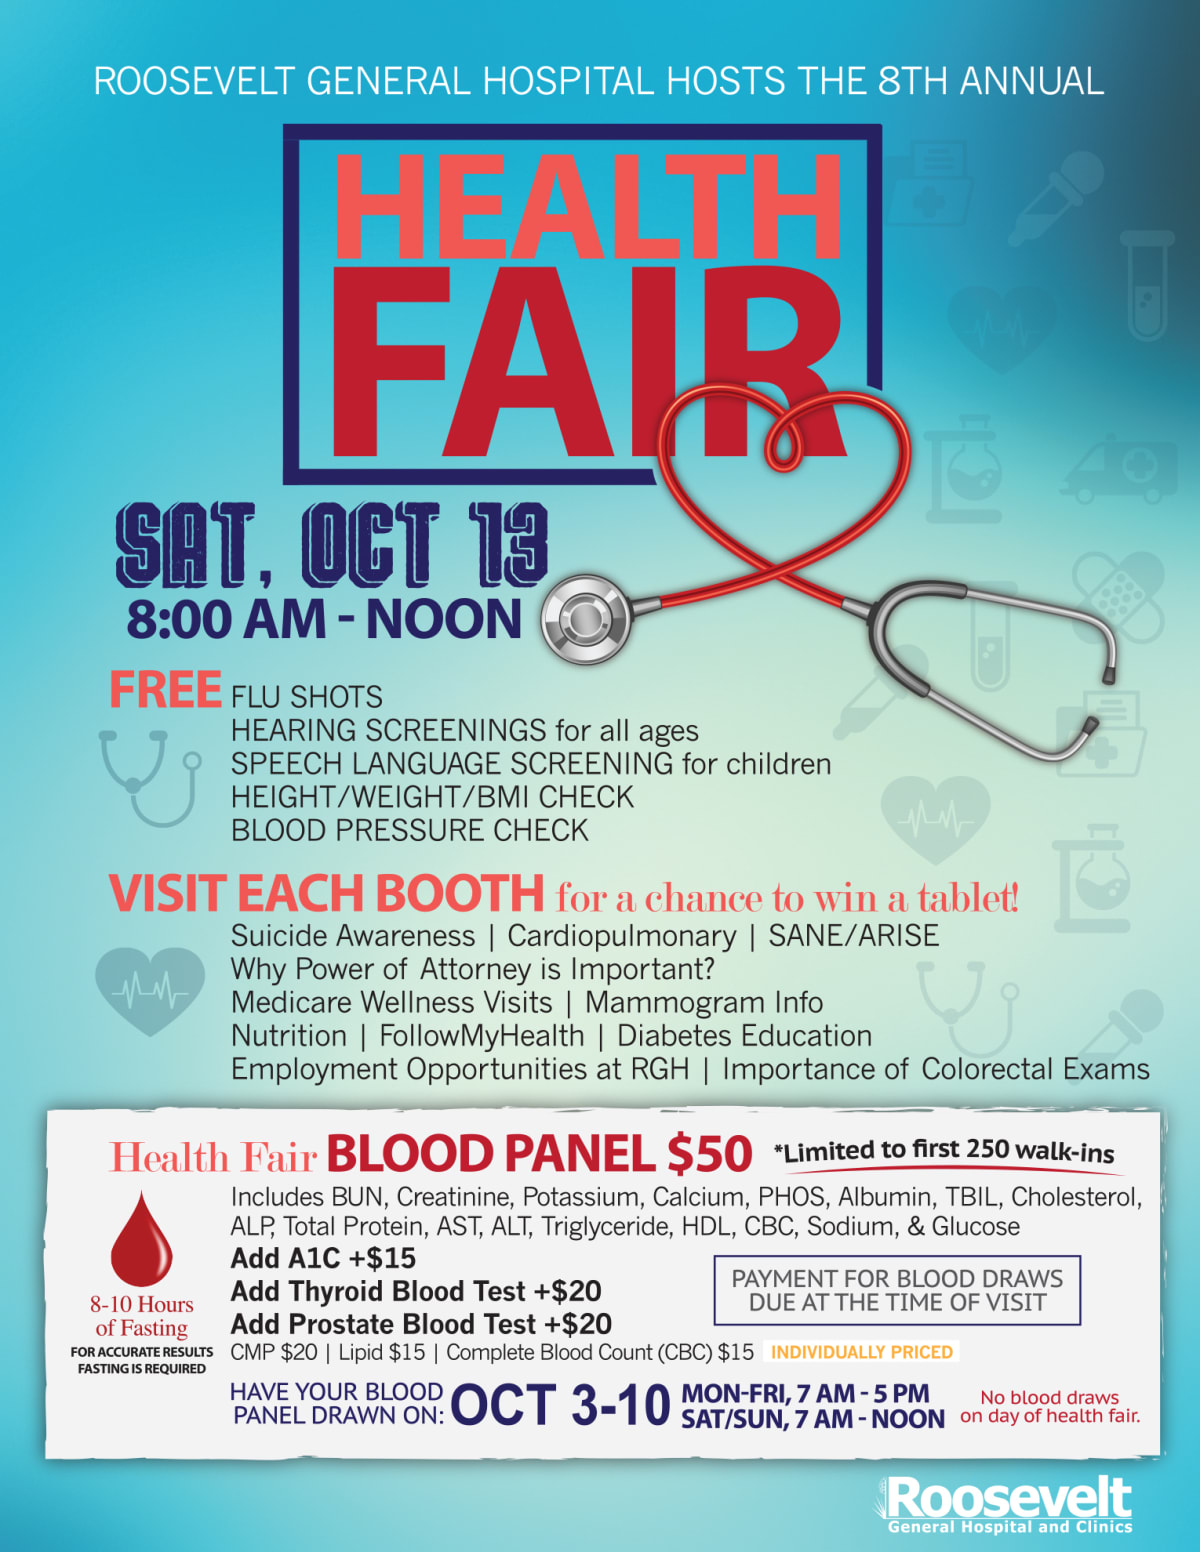 Health-Fair-Flyer-2018-8x11-w1200.jpg